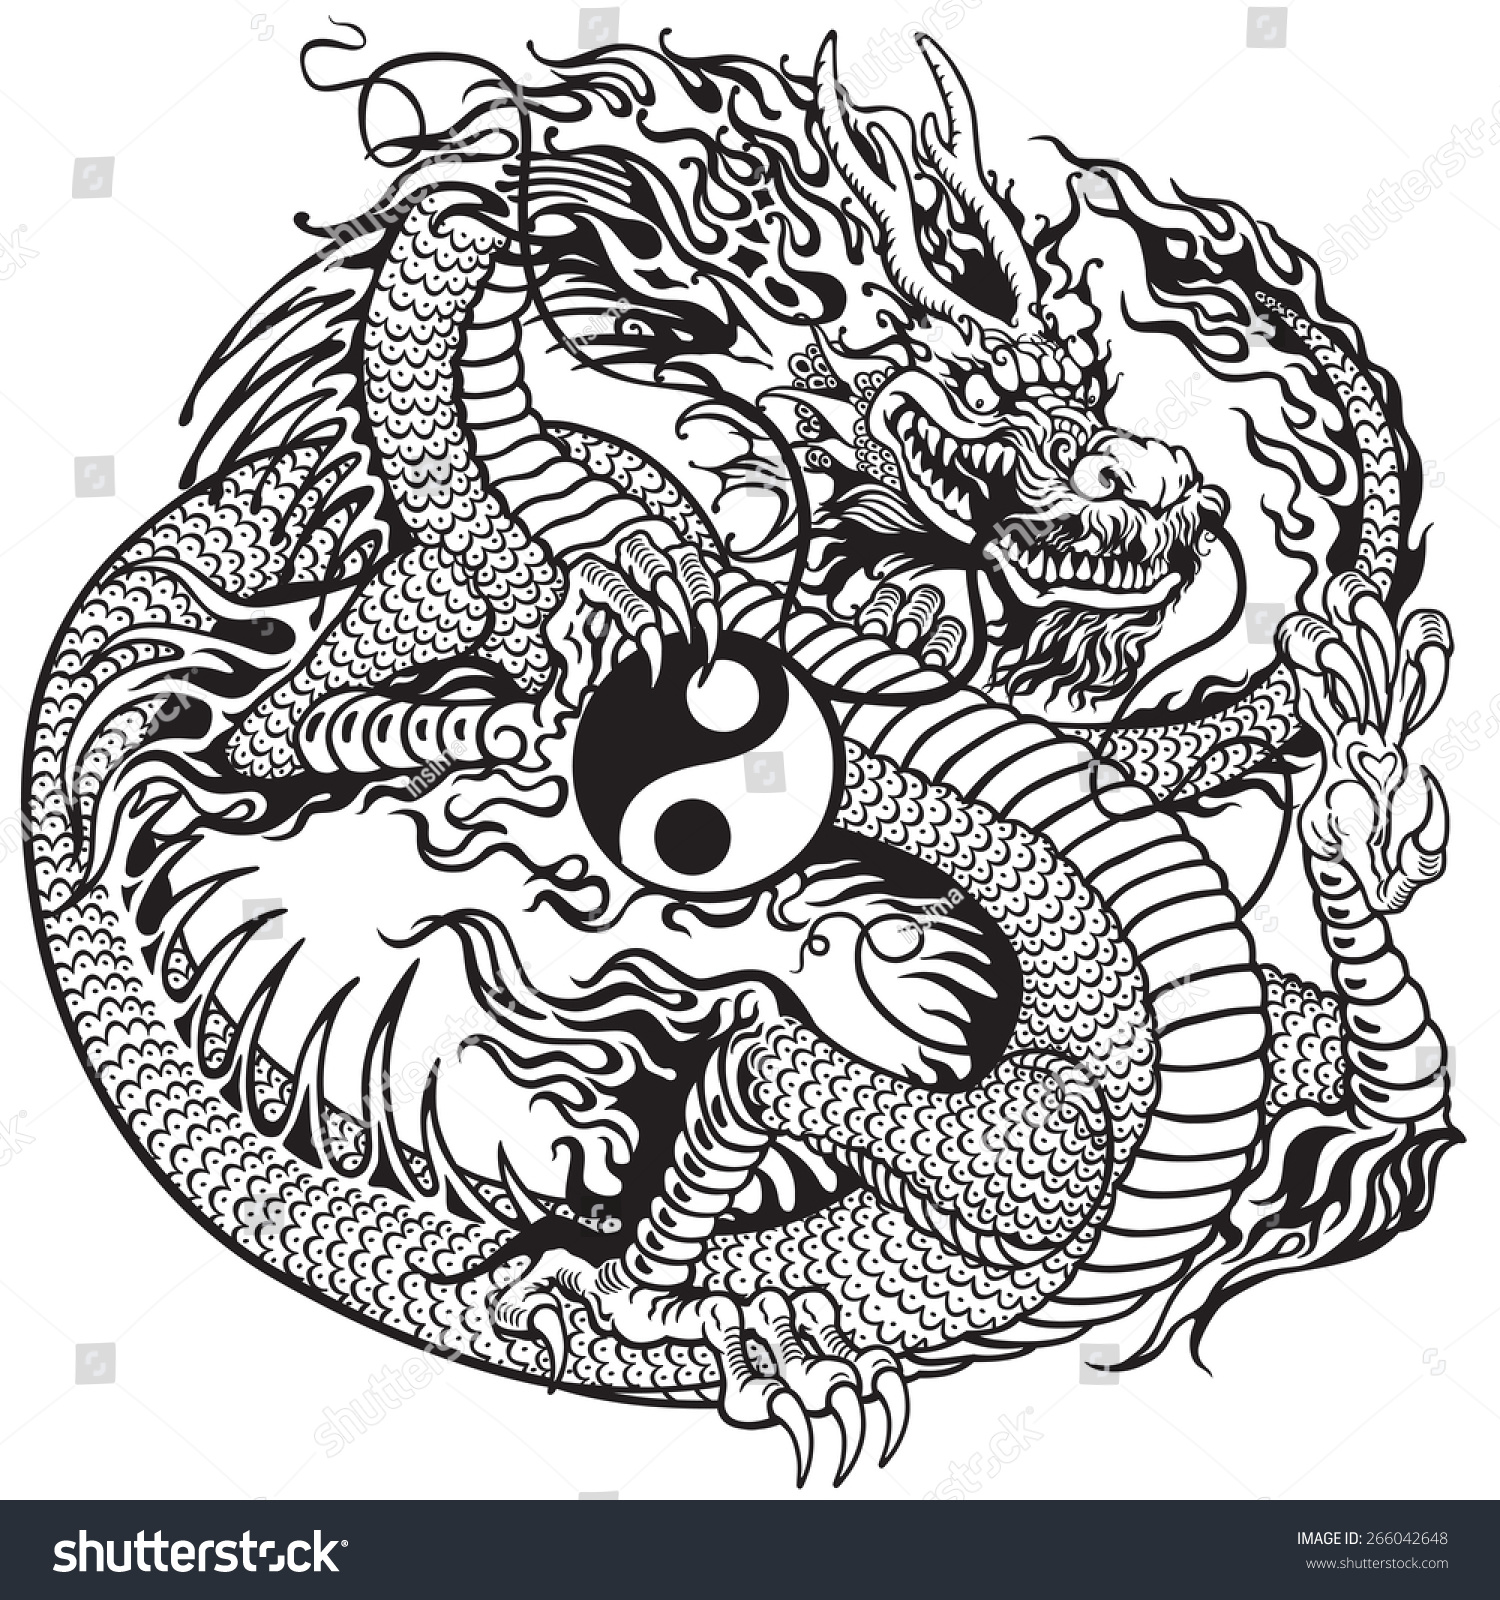 Royalty free chinese dragon holding yin yang symbol 266042648 chinese dragon holding yin yang symbol black and white tattoo illustration 266042648 biocorpaavc